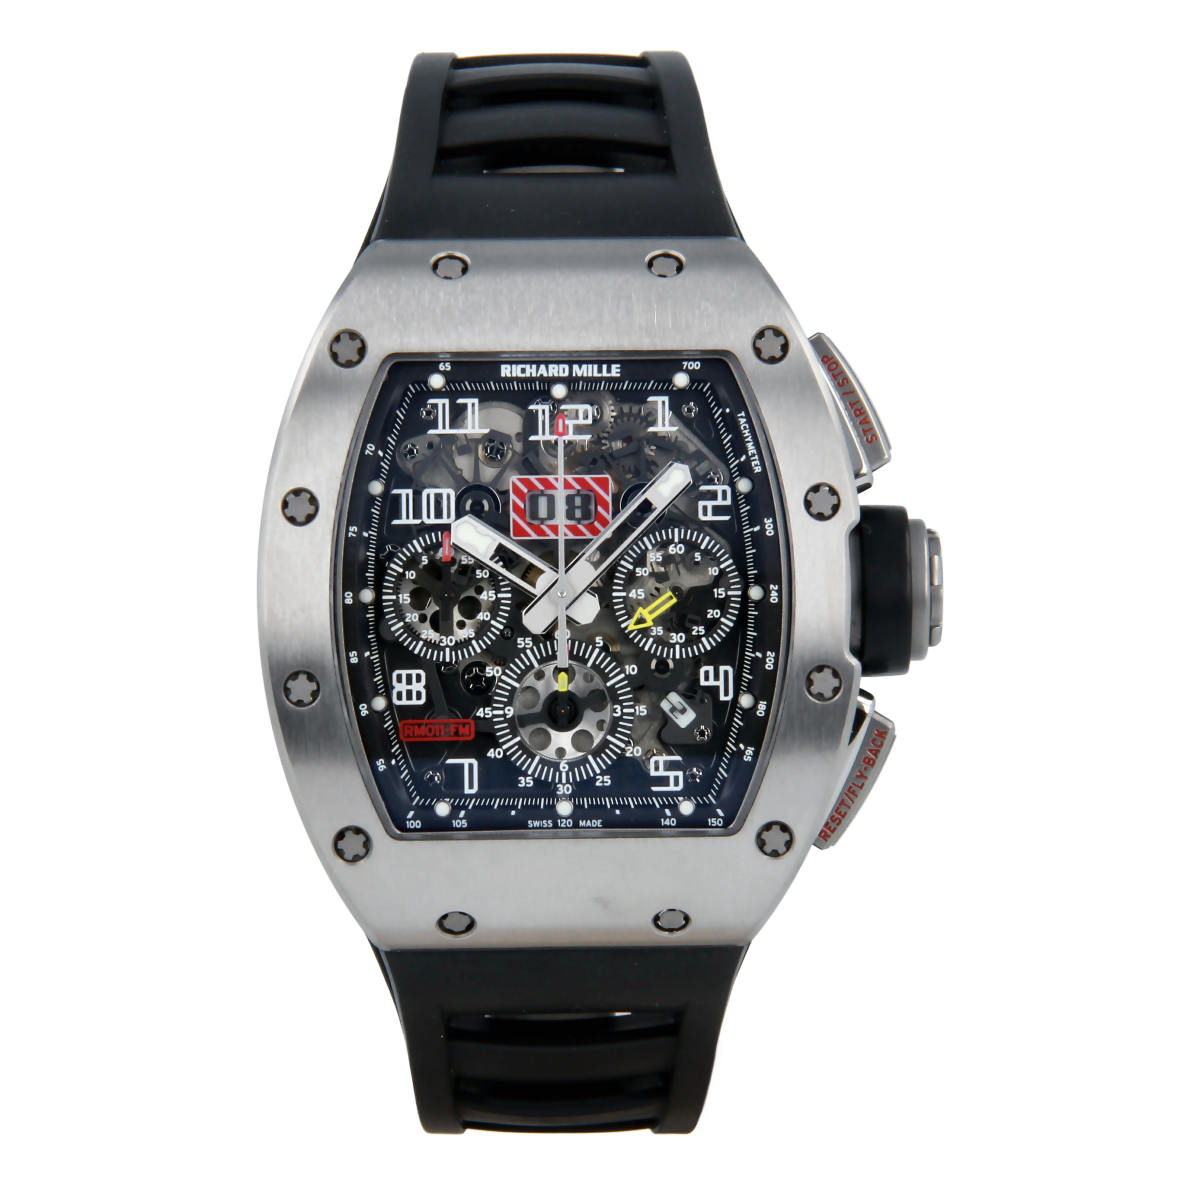 Richard Mille RM11 Chronograph Felipe Massa Titanium *As Good As New* | Buy pre-owned Richard Mille watch